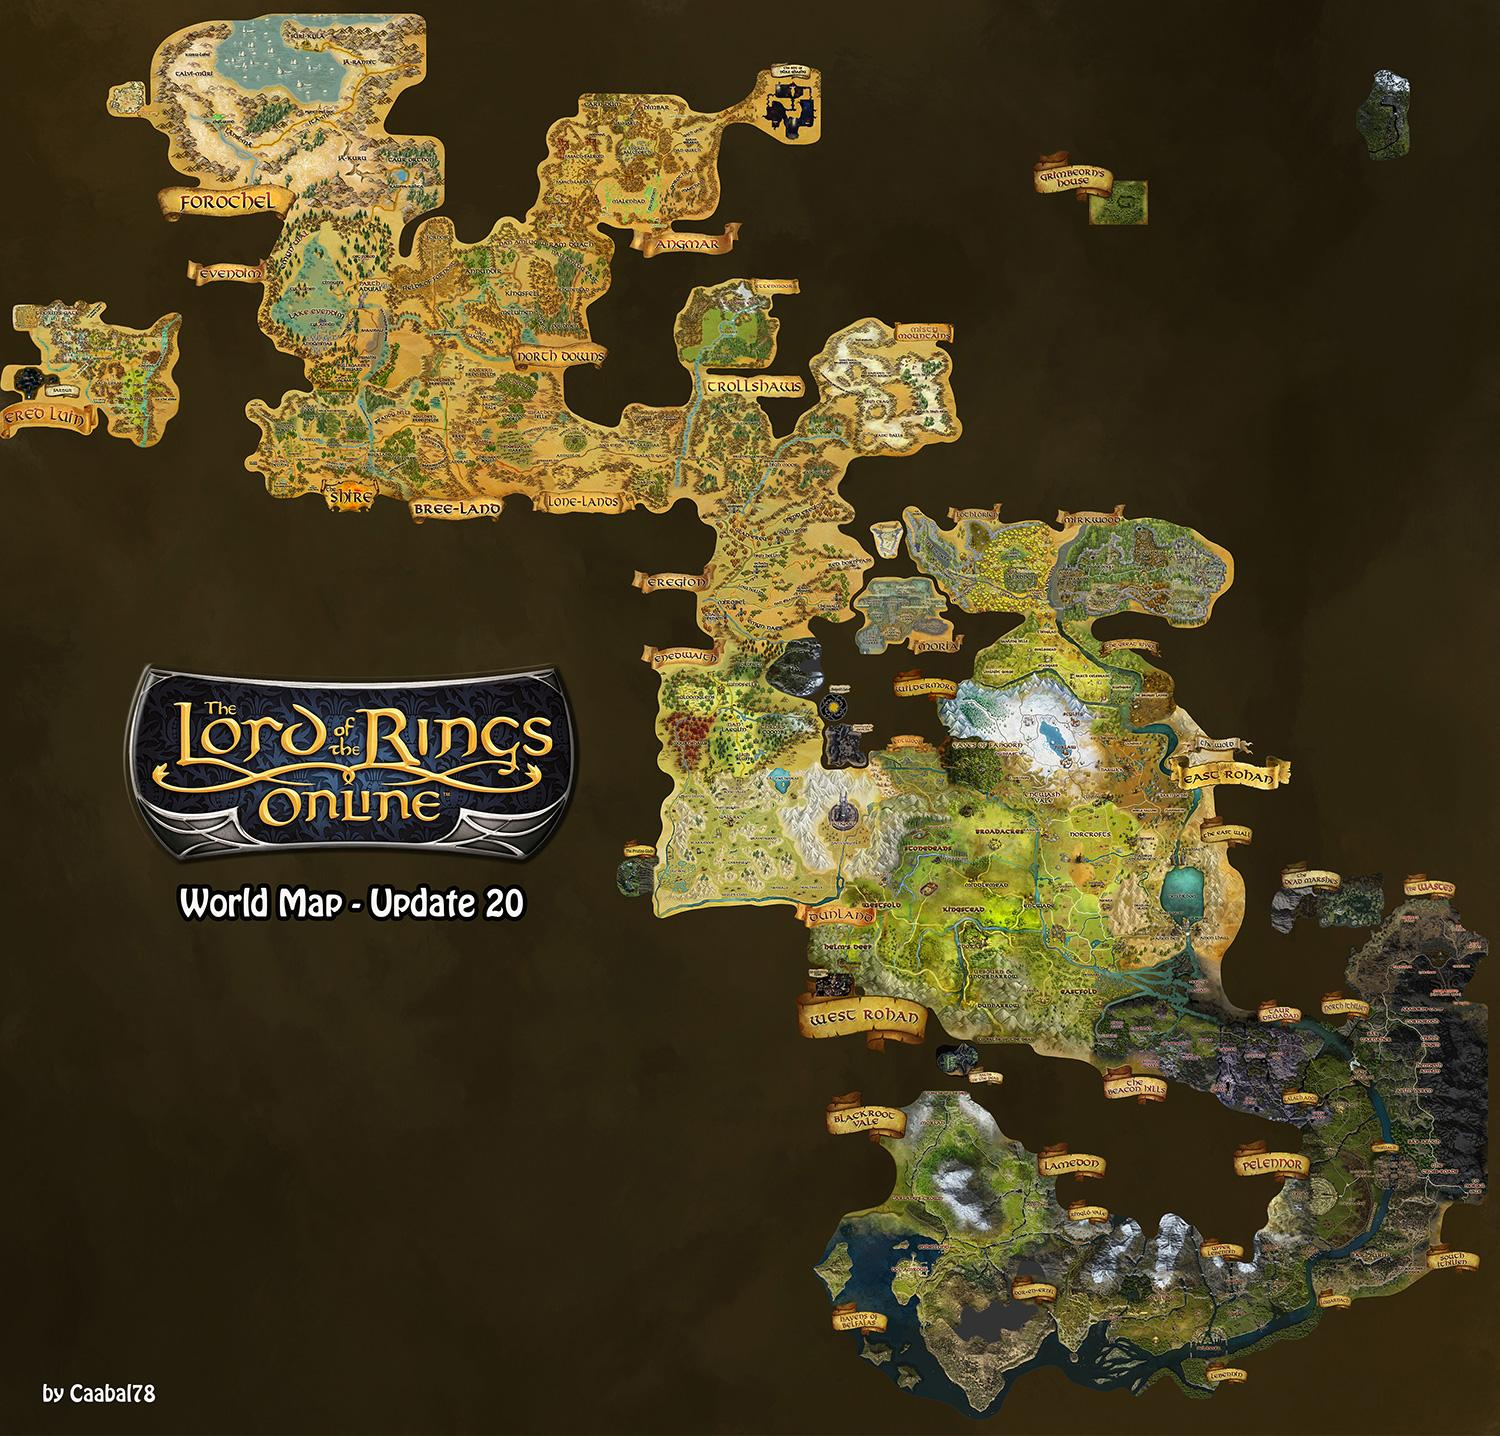 Lord Of The Rings Online World Map.Lotrointerface Lotro World Map Overlay Lotro World Map Overlay